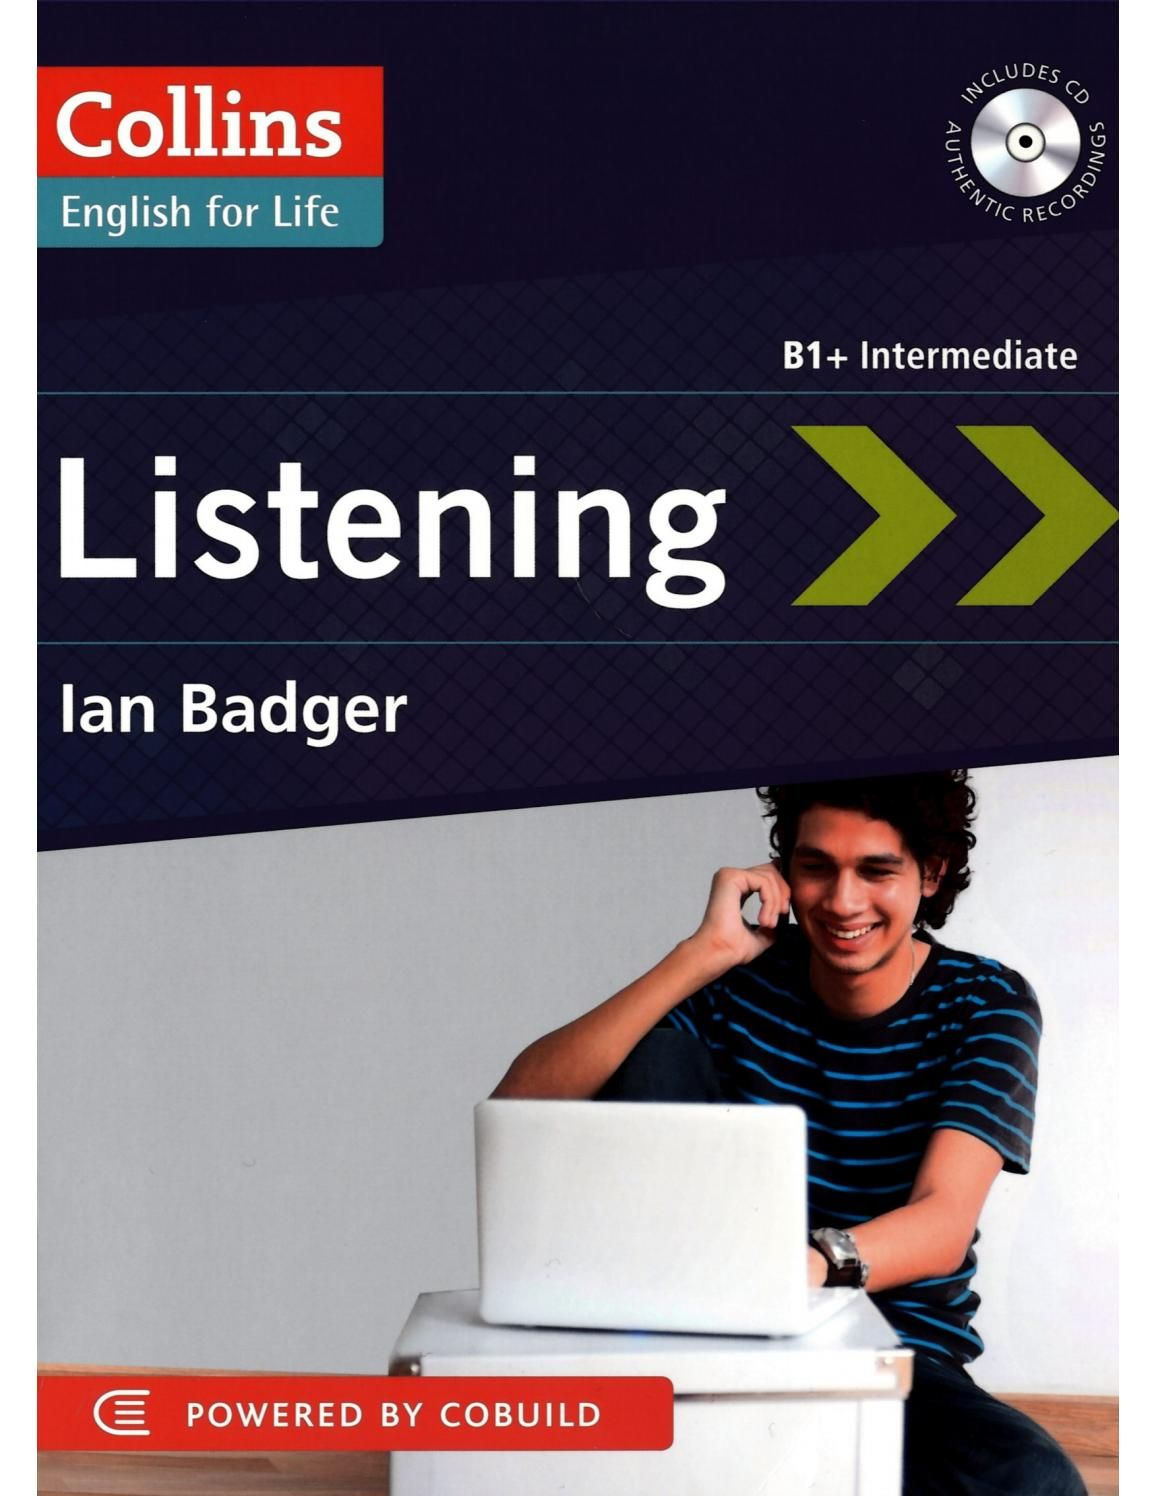 Libros Listening Ingles Collins English For Life Listening B1 Inglés English